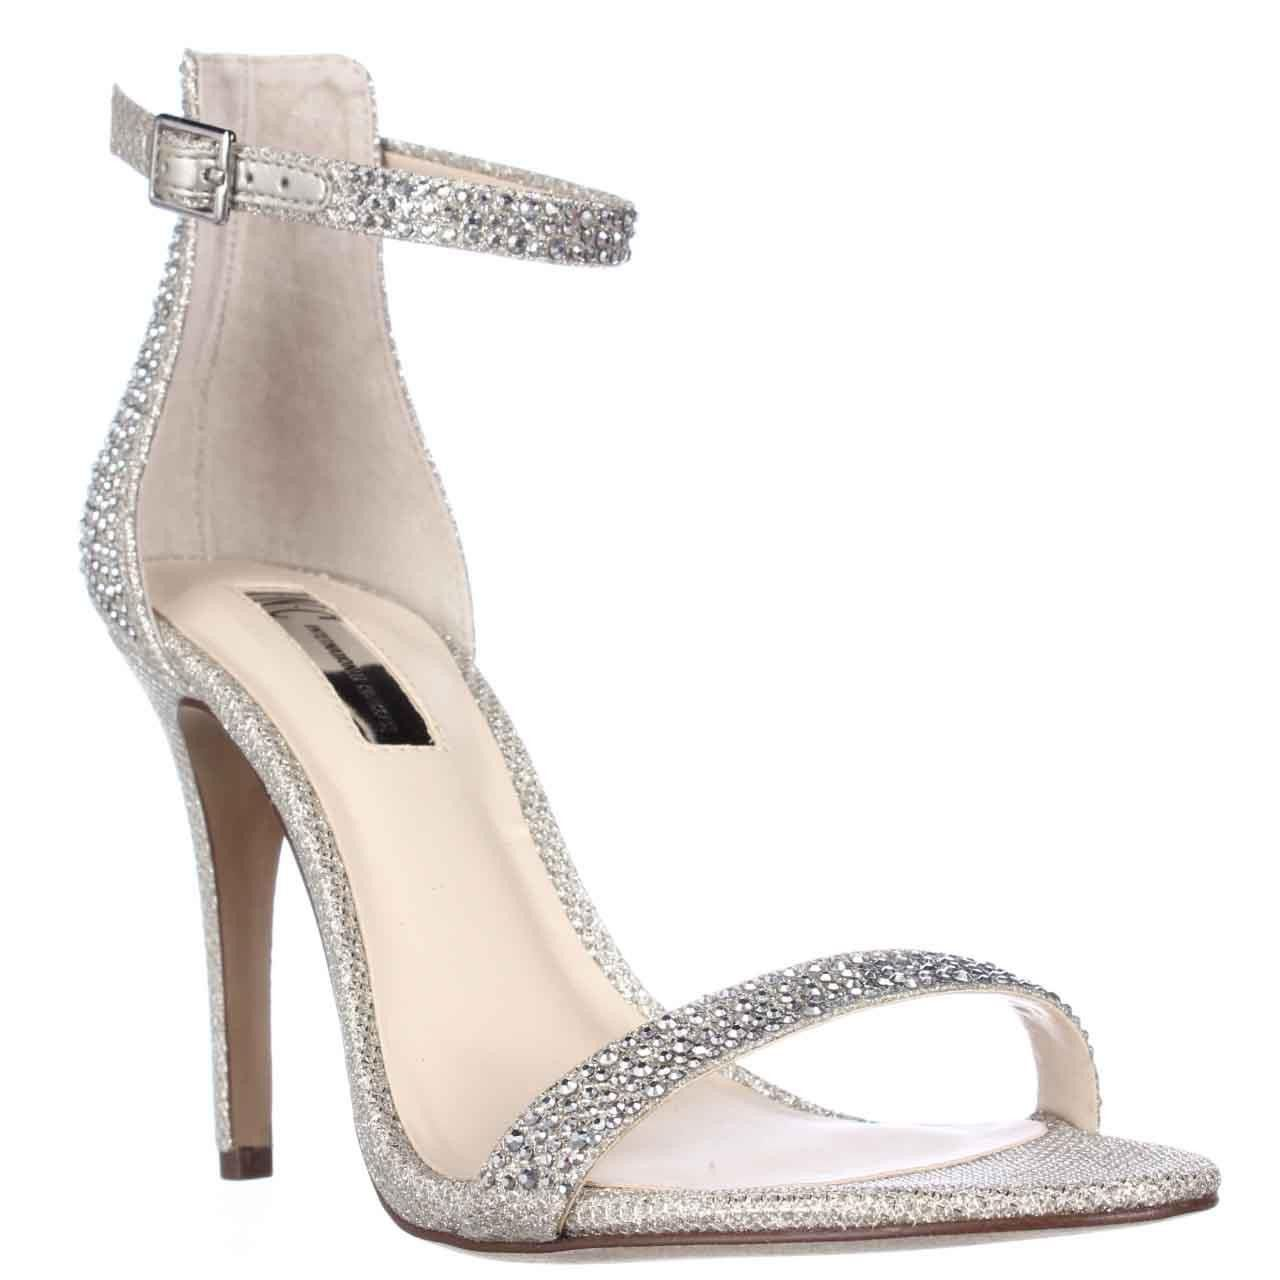 I. Roriee Ankle Strap Dress Sandals - Champagne